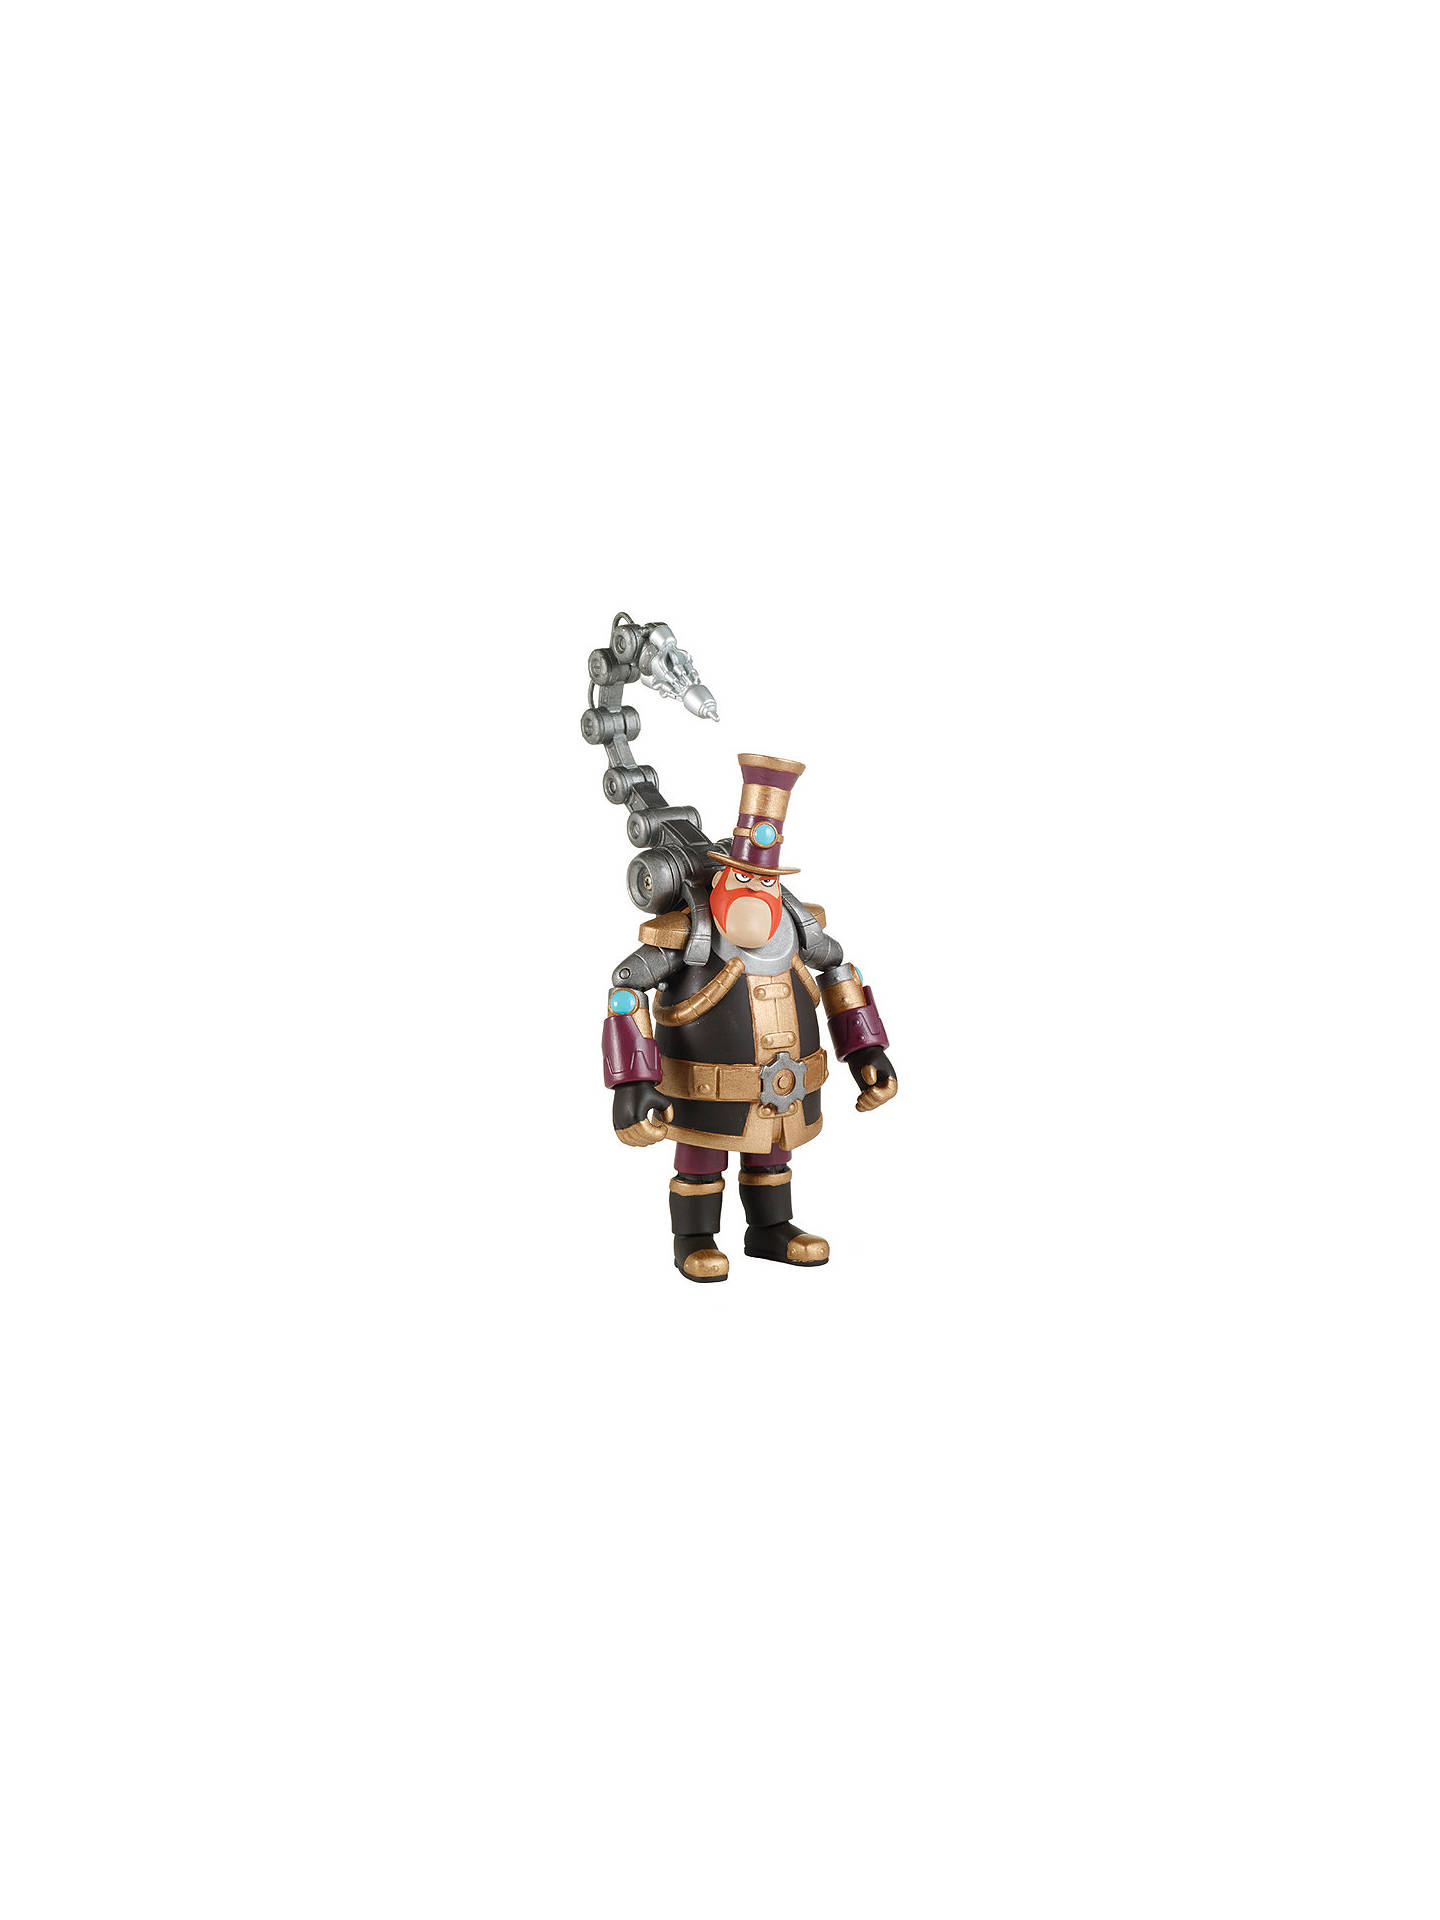 BuyBen 10 Steam Smythe Action Figure Online at johnlewis.com